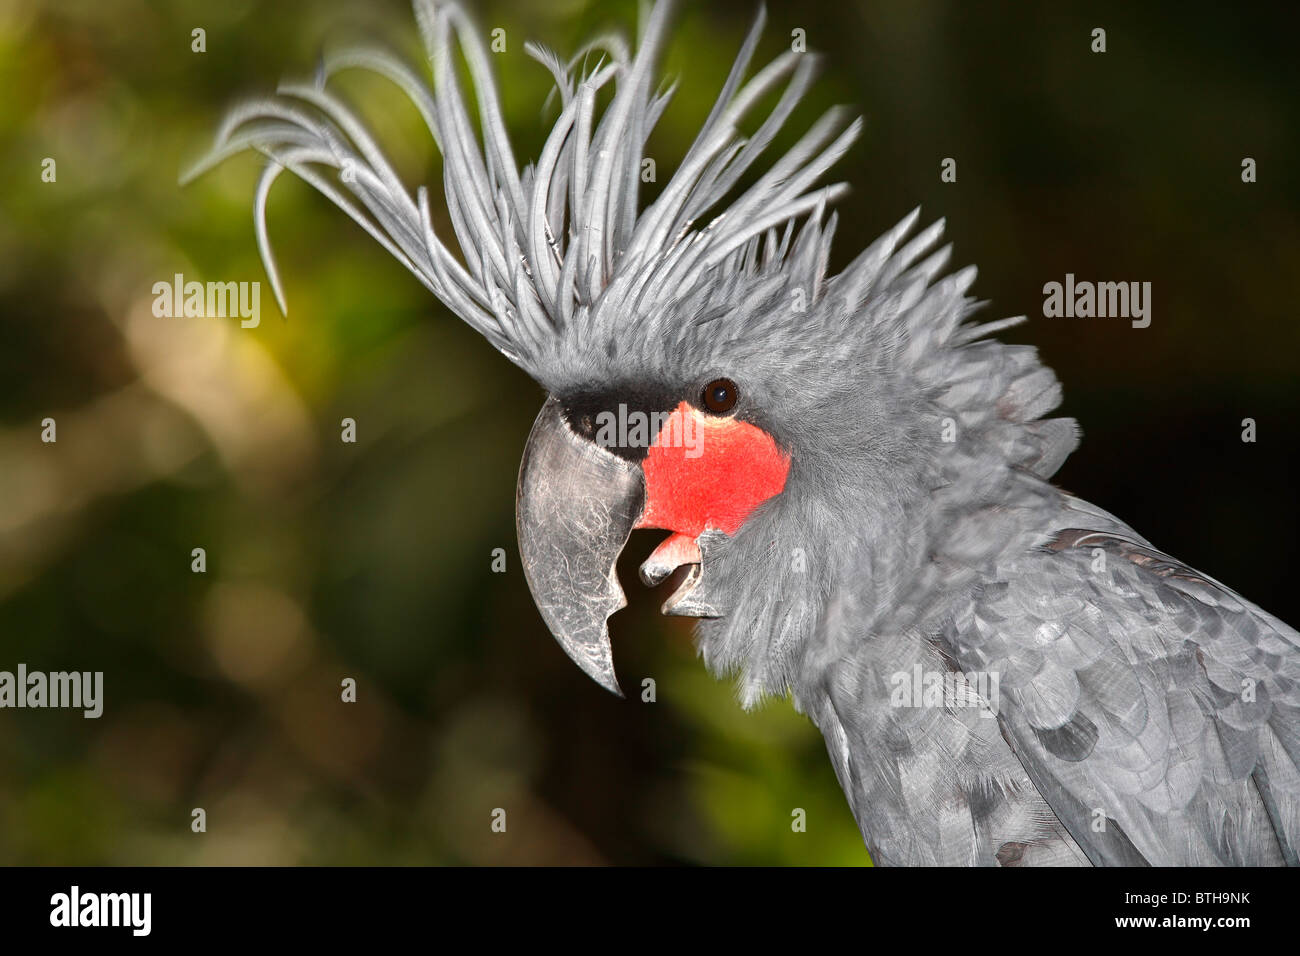 Palm Cockatoo, Probosciger aterrimus, also known as Goliath Cockatoo, is a large smoky-grey cockatoo. - Stock Image